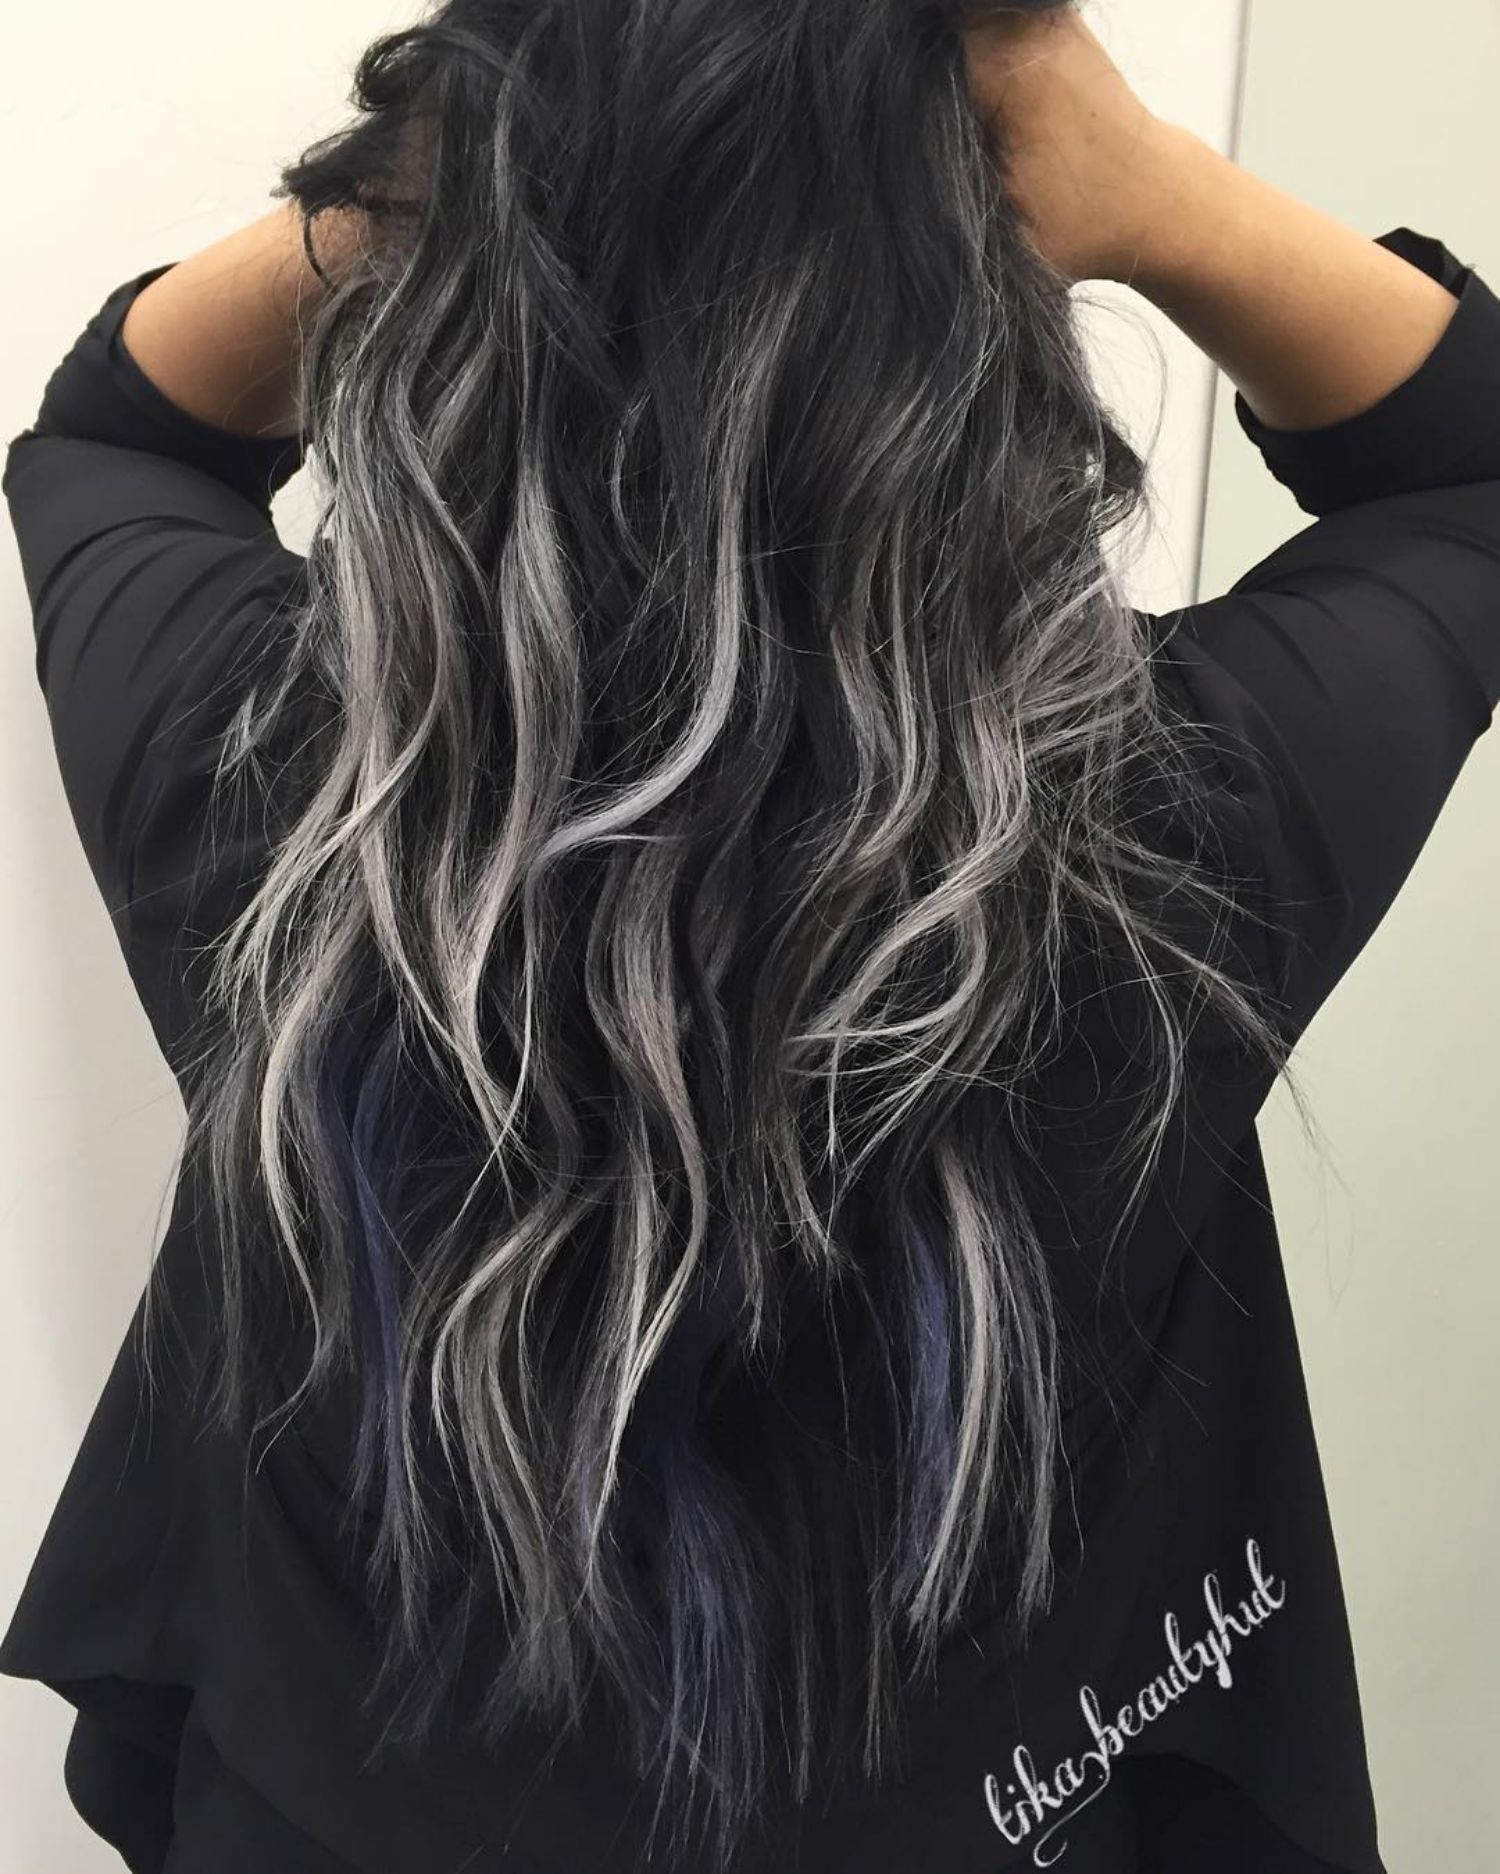 60 Shades Of Grey Silver And White Highlights For Eternal Youth In 2020 Hair Color For Black Hair Hair Styles Long Hair Styles